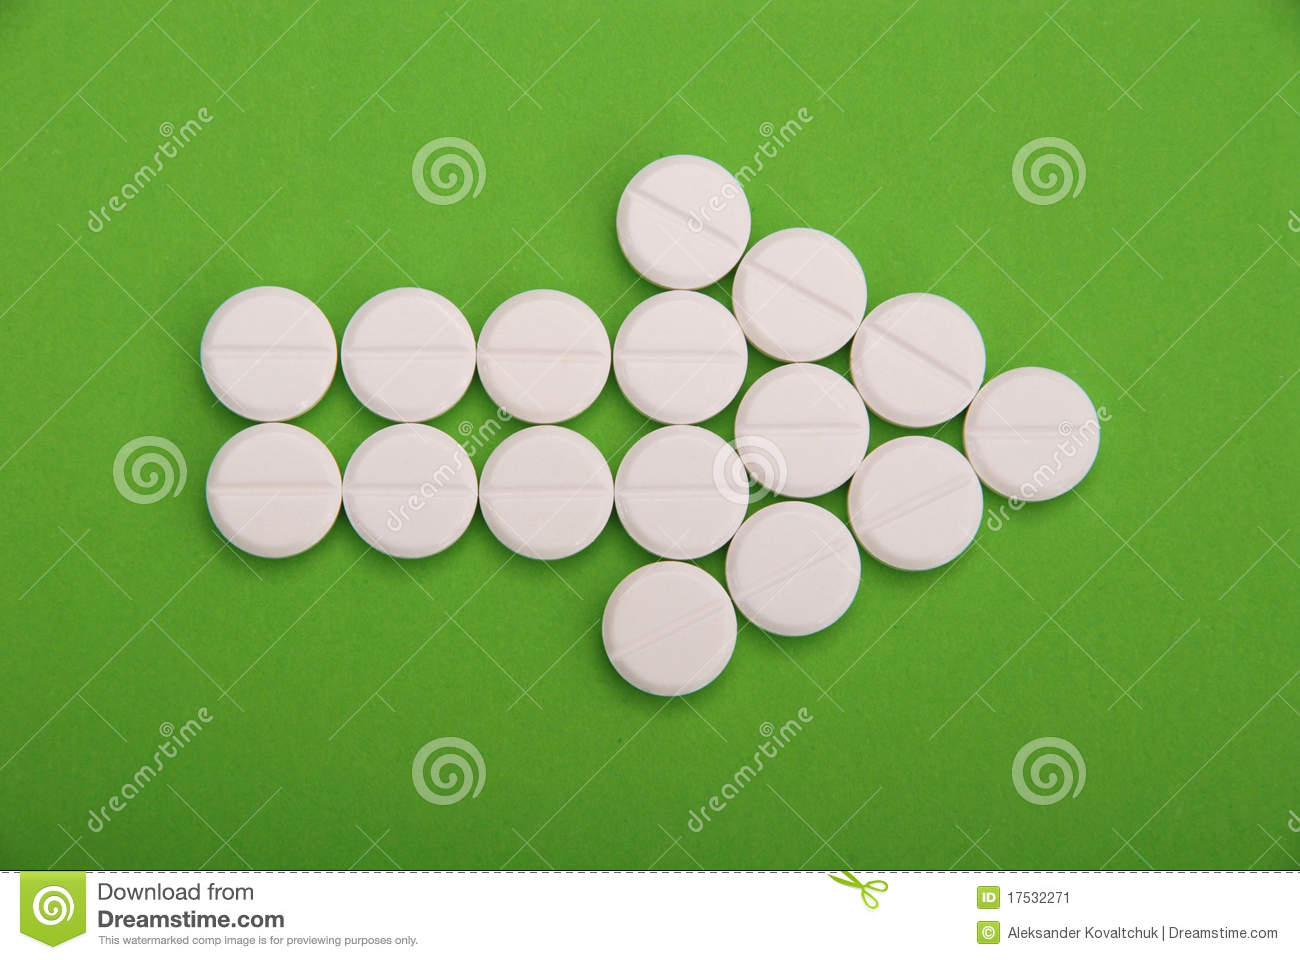 White Pill With Arrow Related Keywords & Suggestions - White